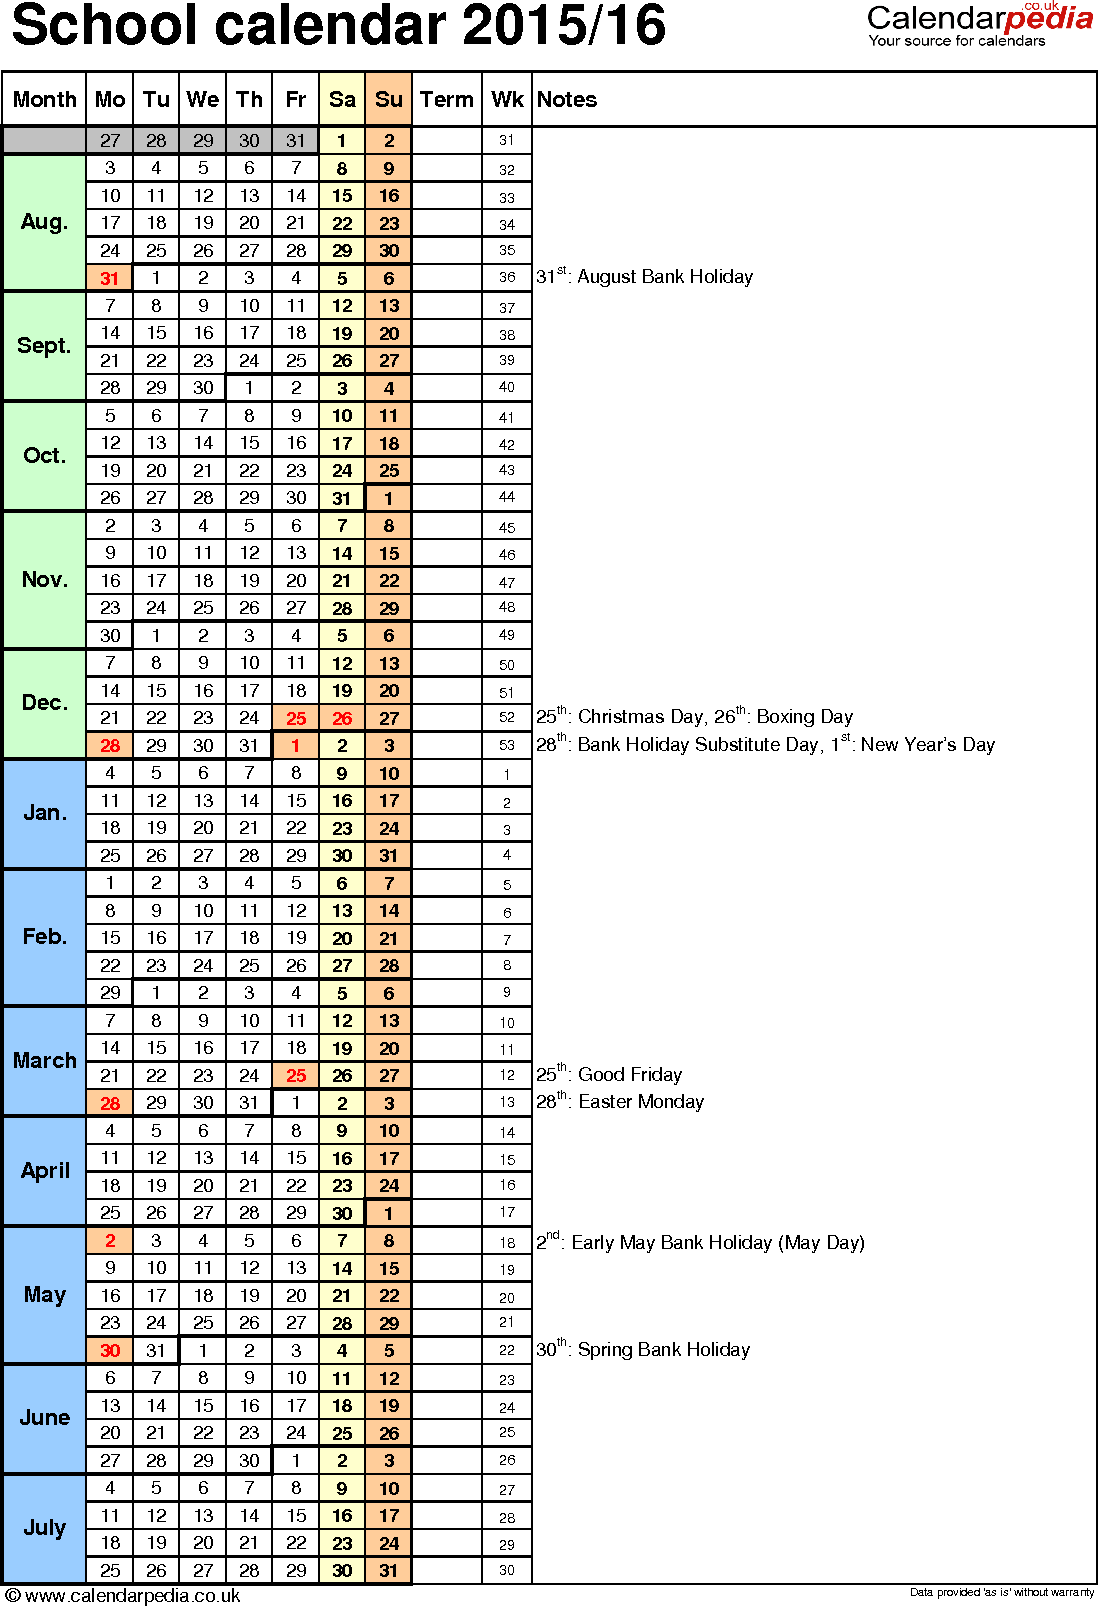 Template 7: School year calendars 2015/16 as Excel template, portrait orientation, 1 page, with UK bank holidays, days in continuous (rolling) layout